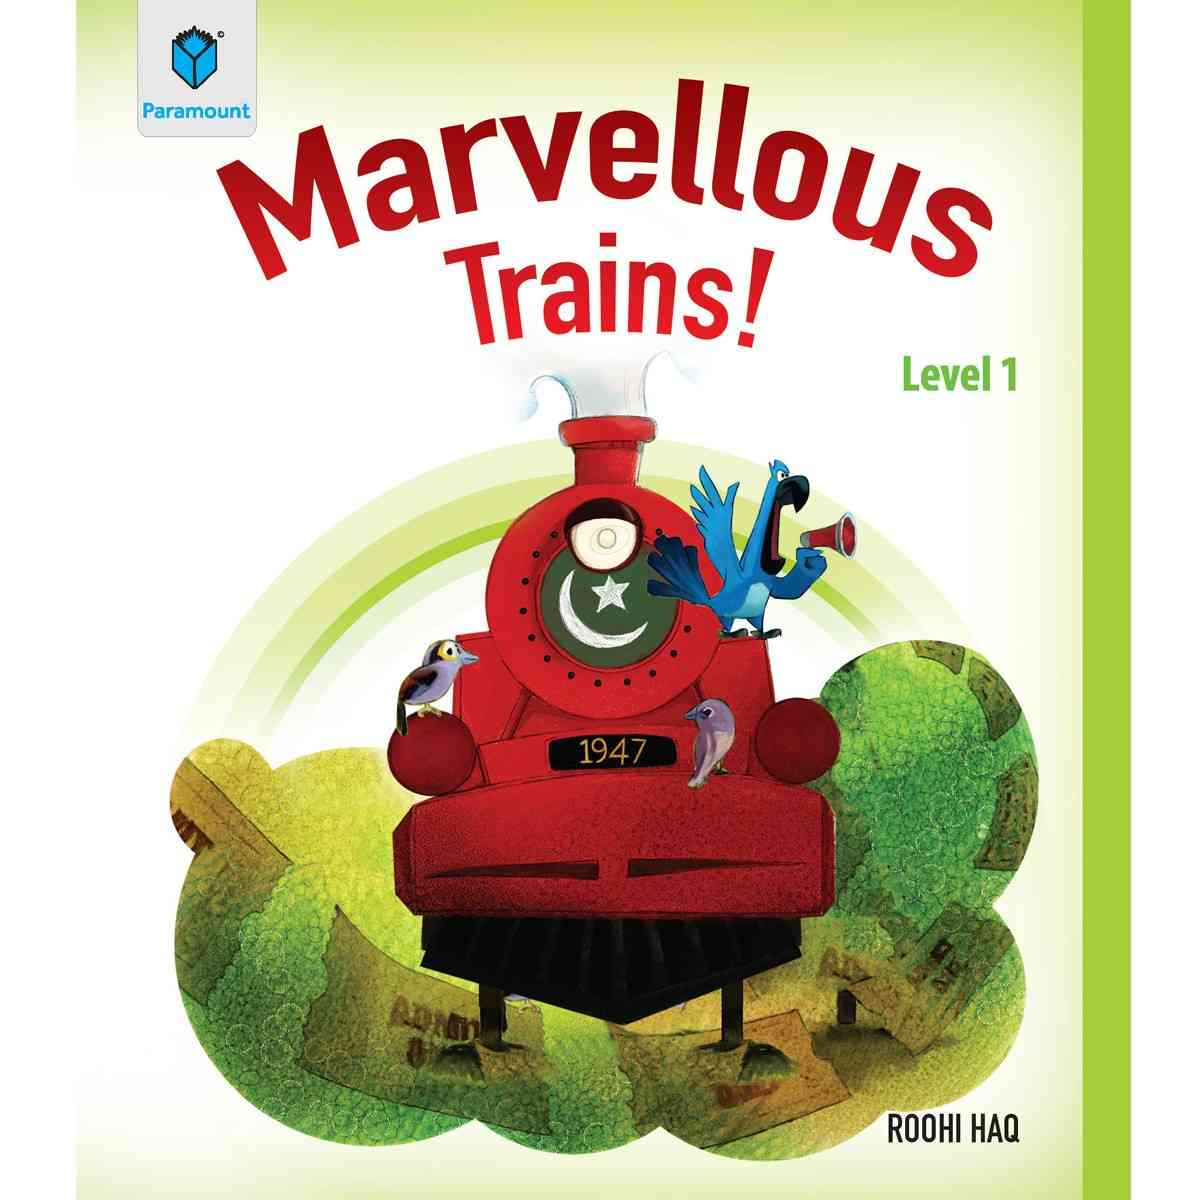 Level 1: Marvellous Train